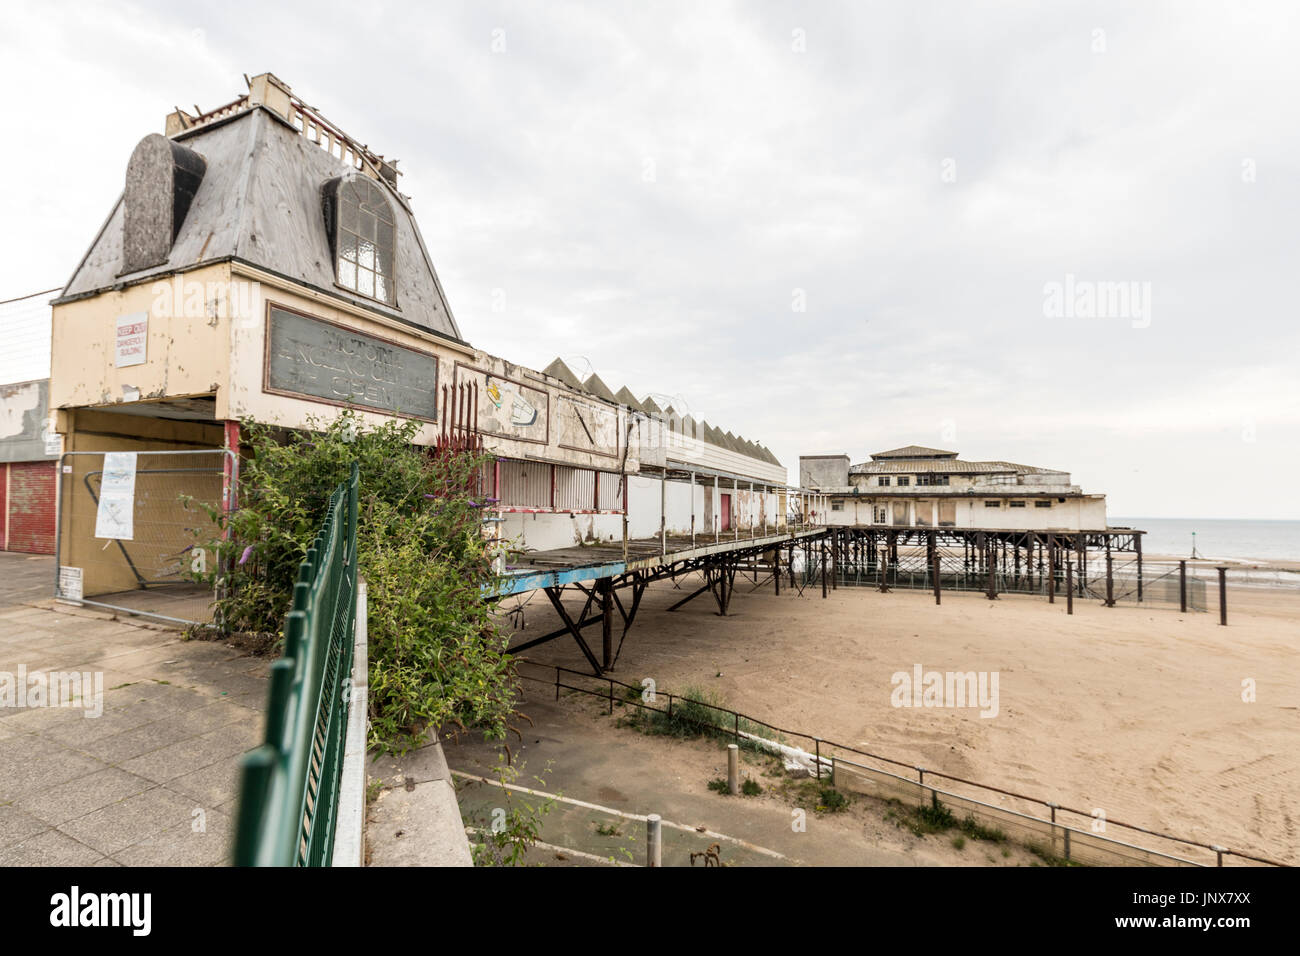 Remains of disused Victoria Pier, Colwyn Bay, Conwy, Wales, UK - Stock Image